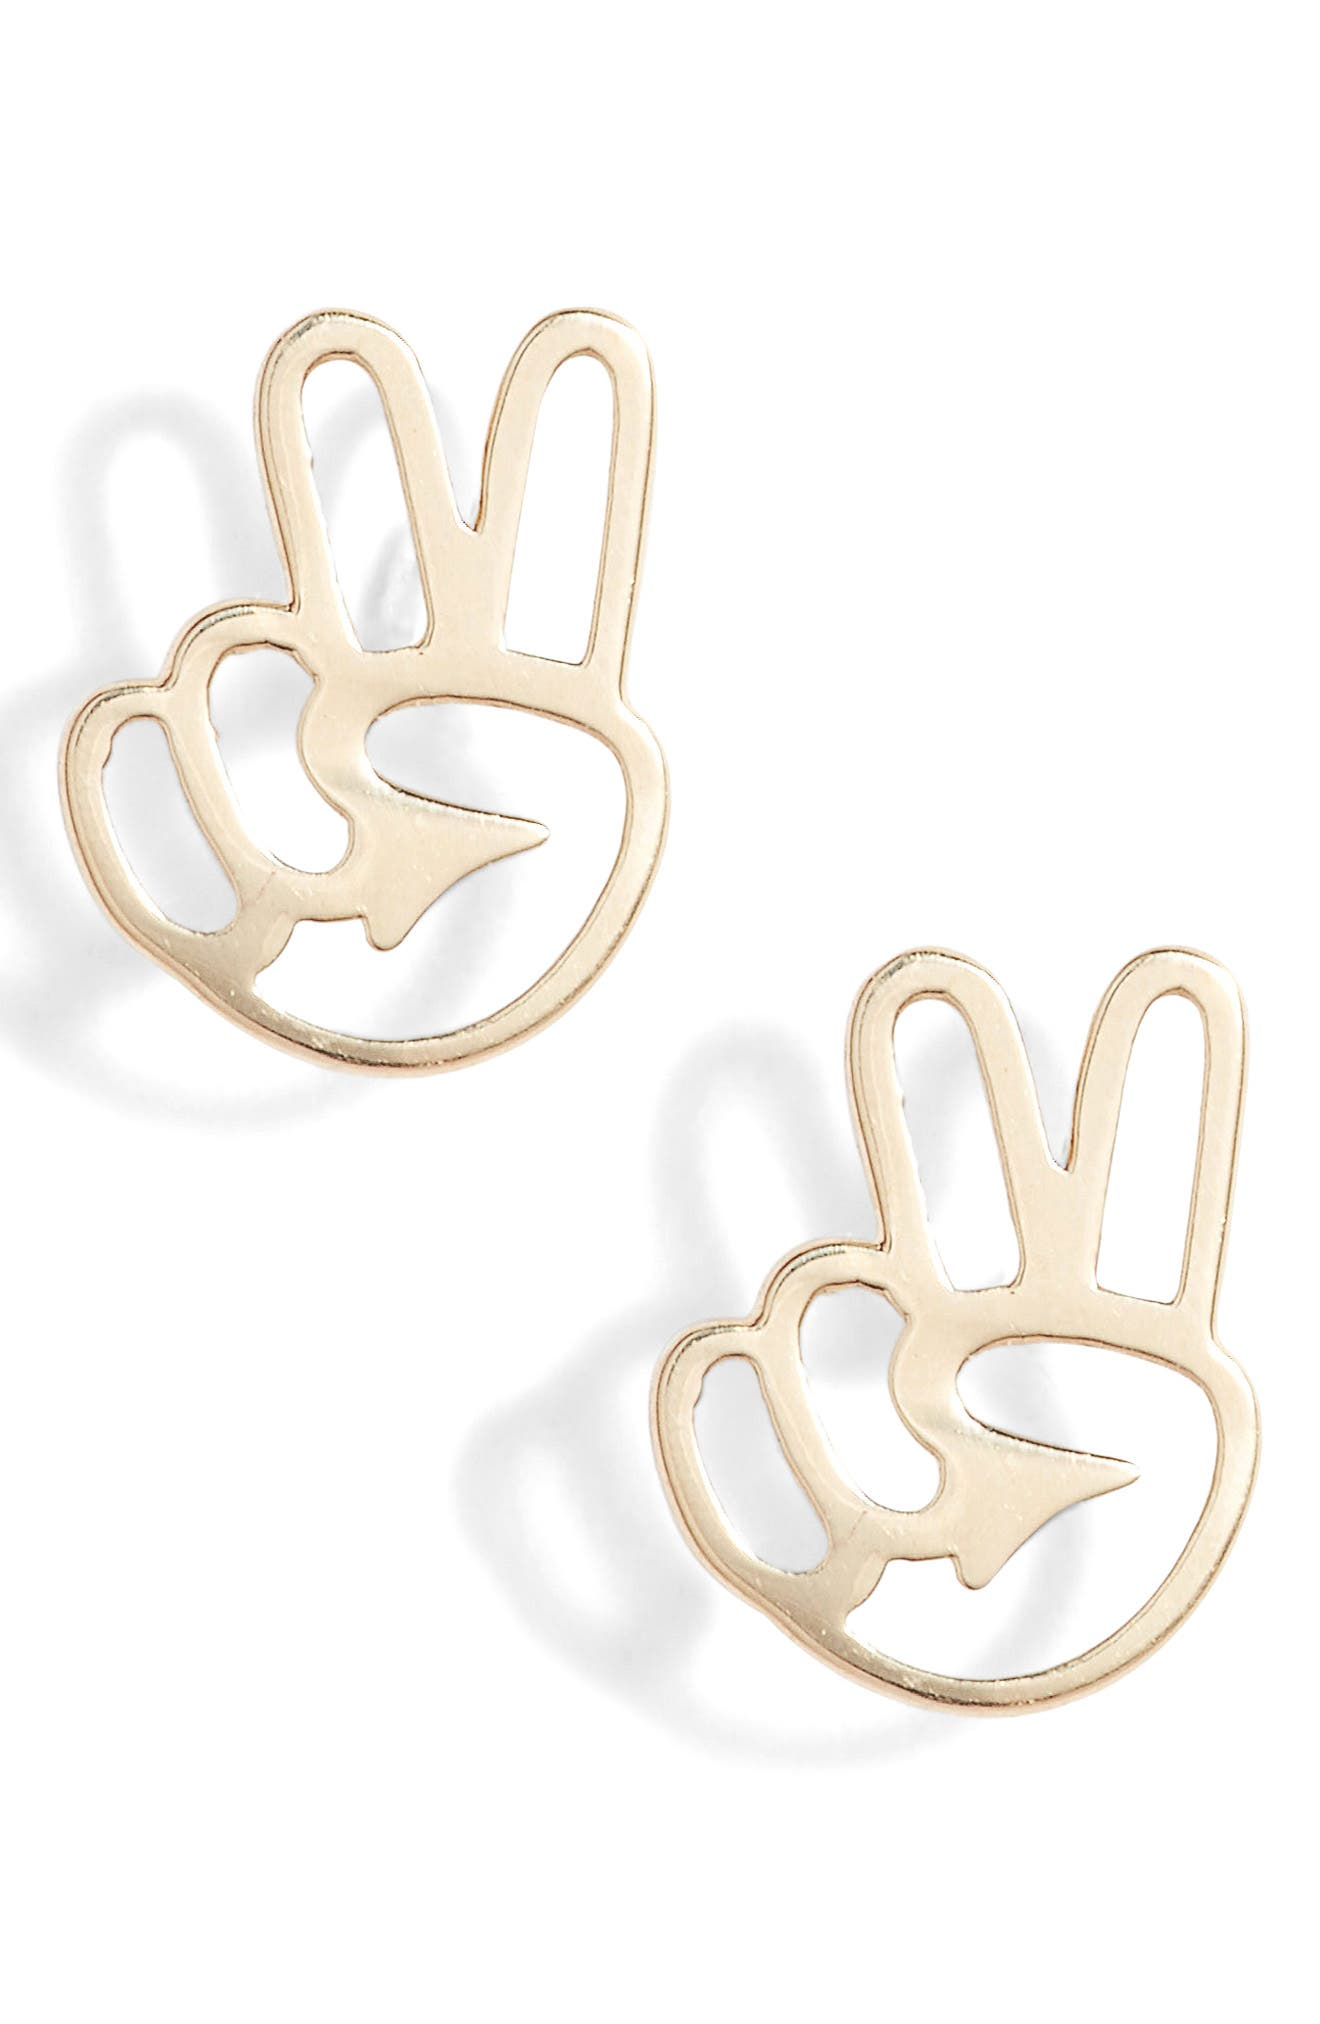 Peace Out Stud Earrings,                         Main,                         color, Yellow Gold